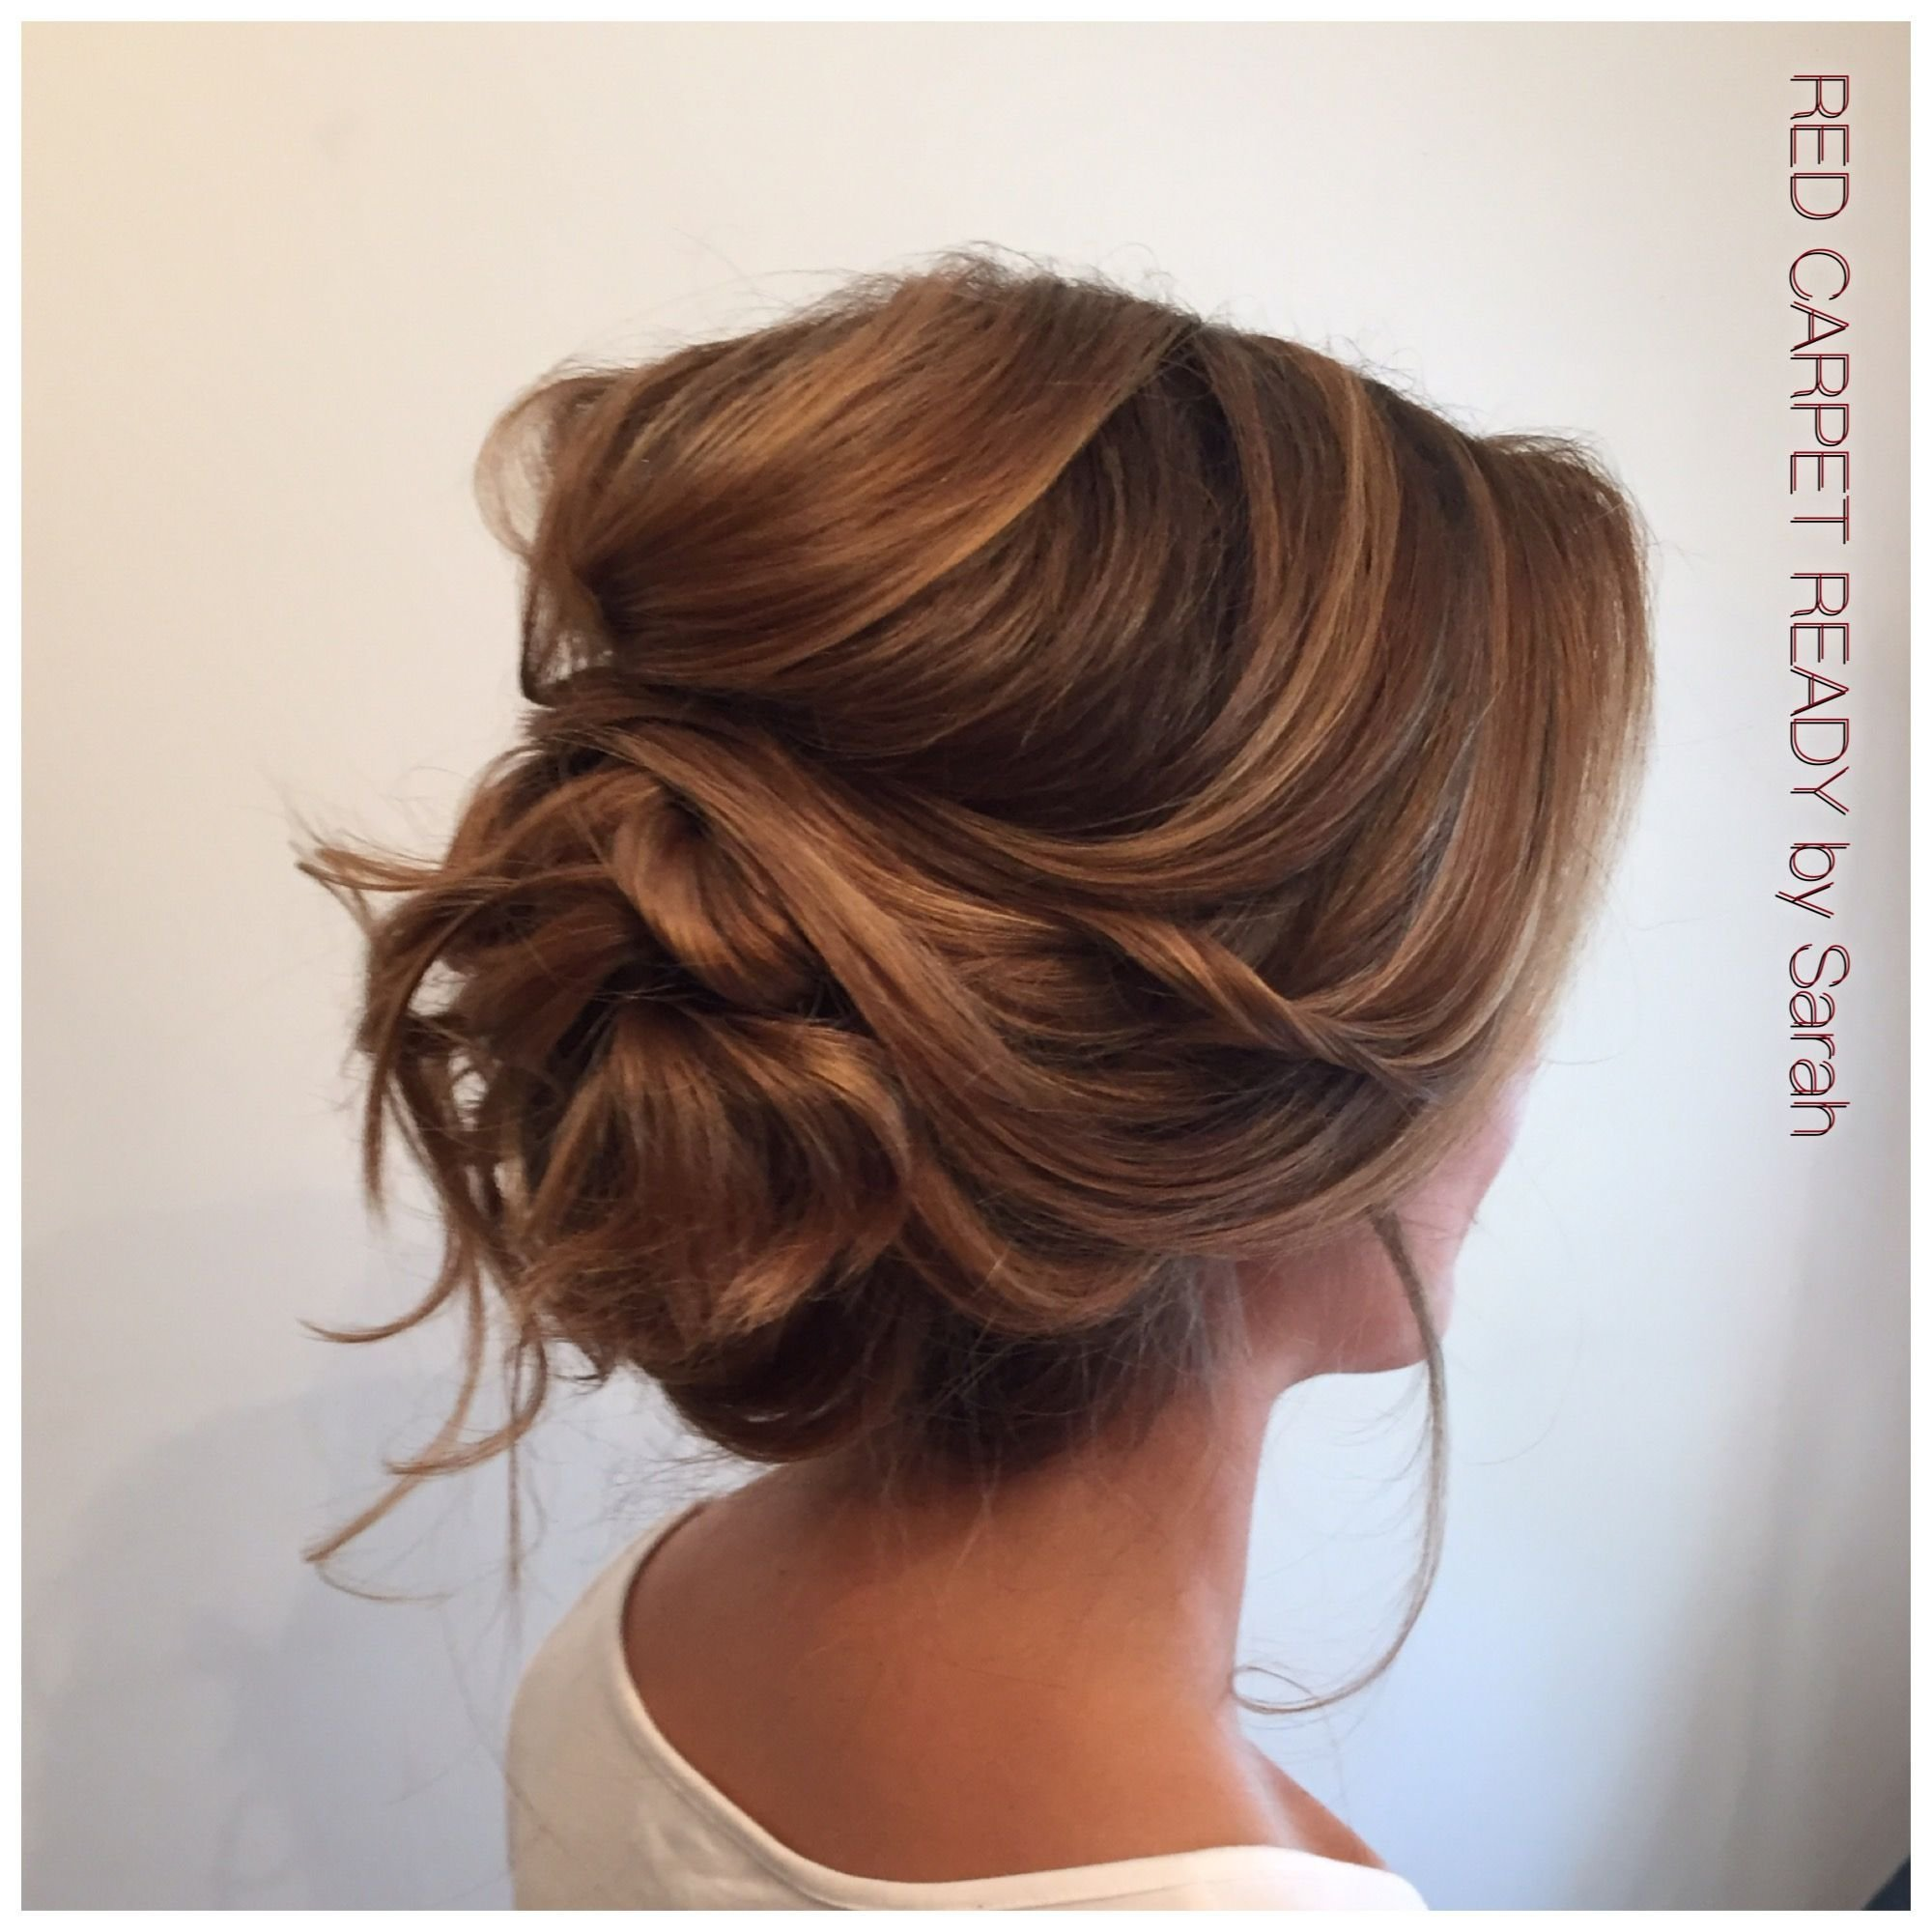 The Best Soft Low Voluminous Updo Hair By Me Hair Trends Hair Pictures